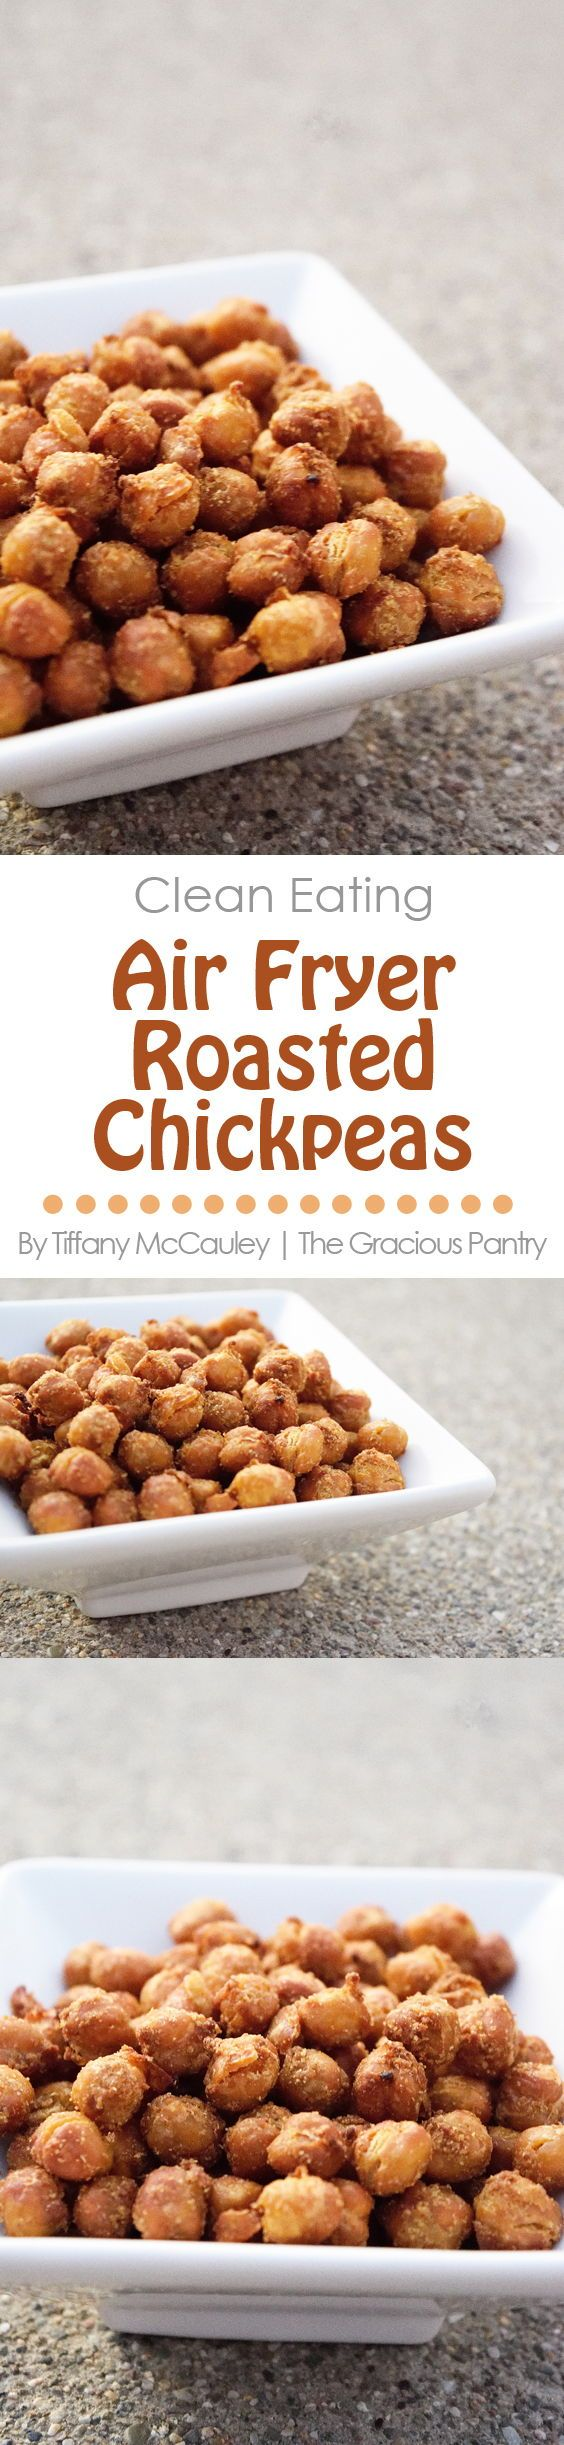 Clean Eating Recipes | Air Fryer Recipes | Air Fryer Roasted Chickpeas Recipe #Clean Eating #EatClean #AirFryerRecipe